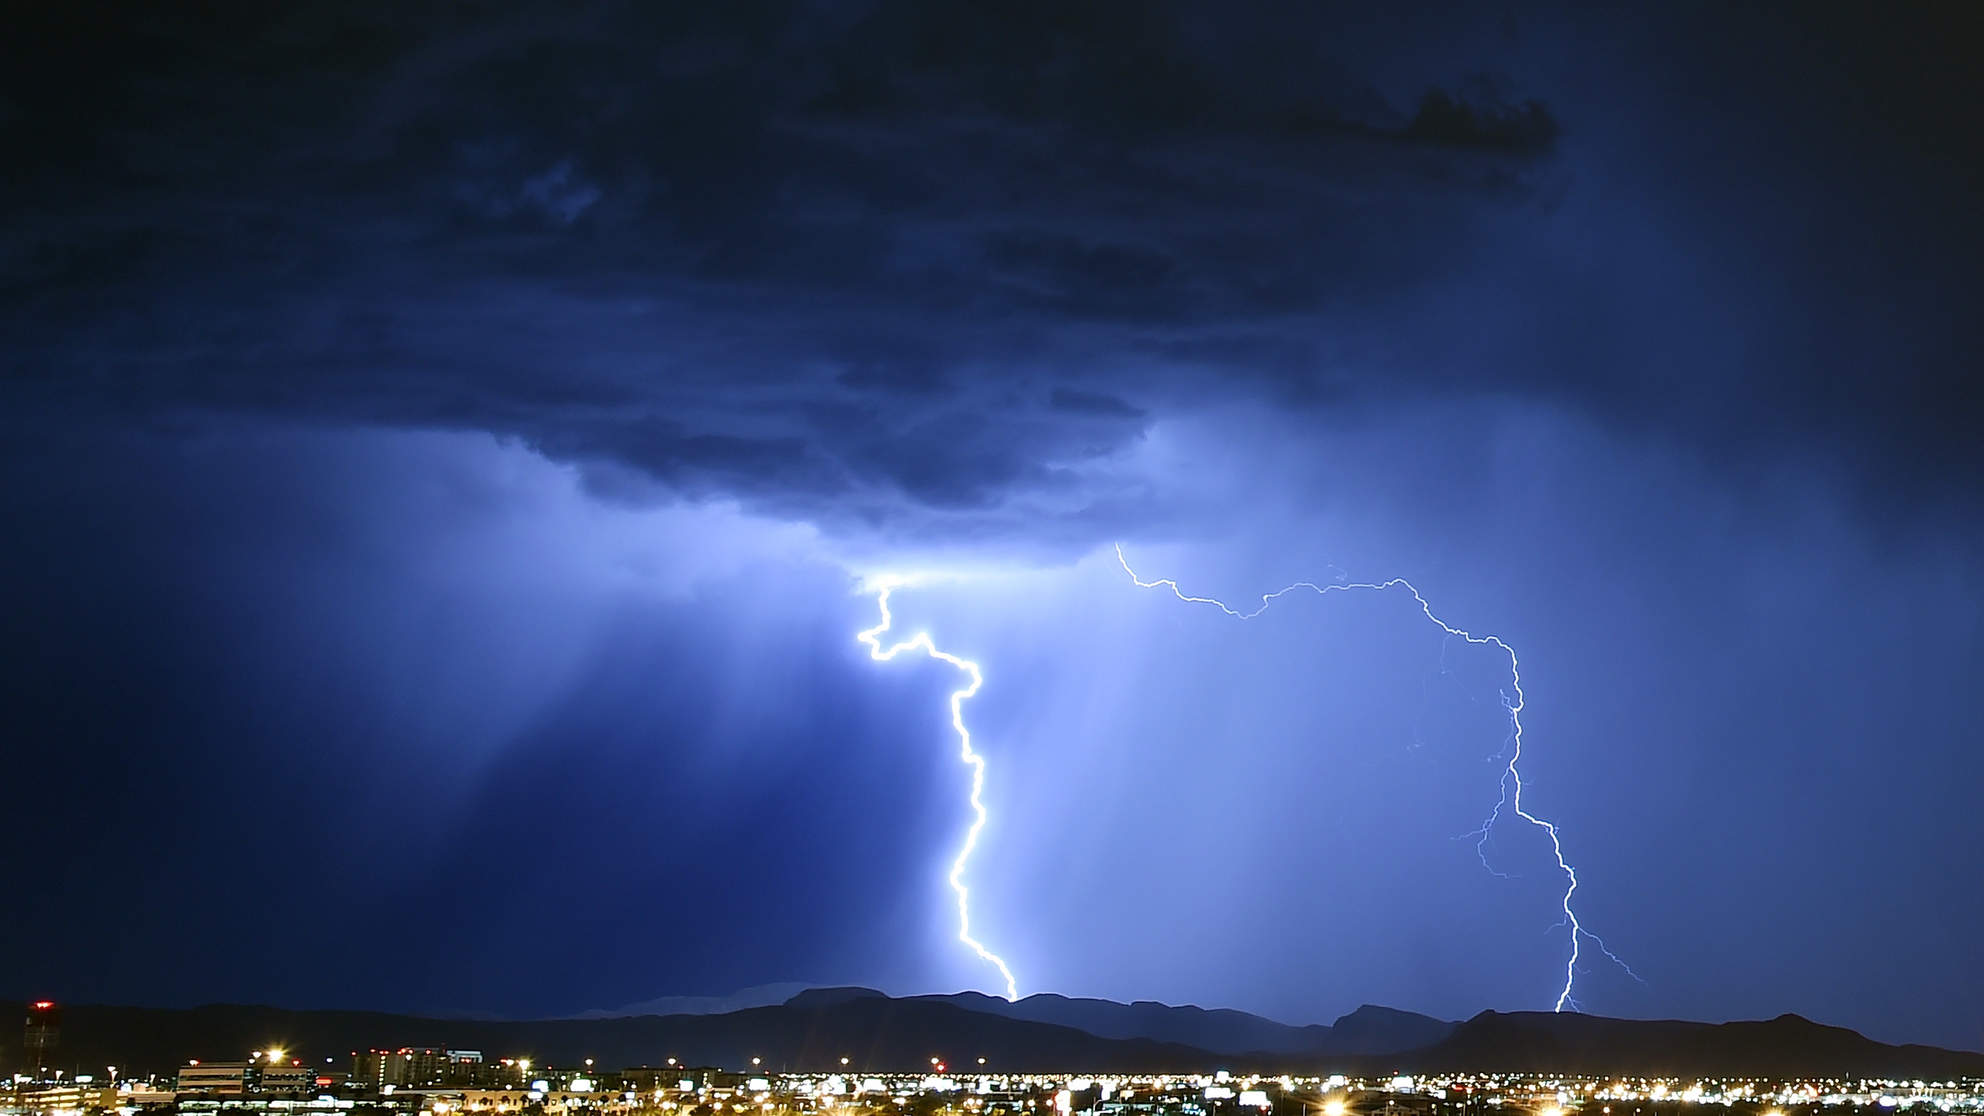 A 66-Year-Old Woman's Brain Implant Was Shut Off By a Lightning Strike